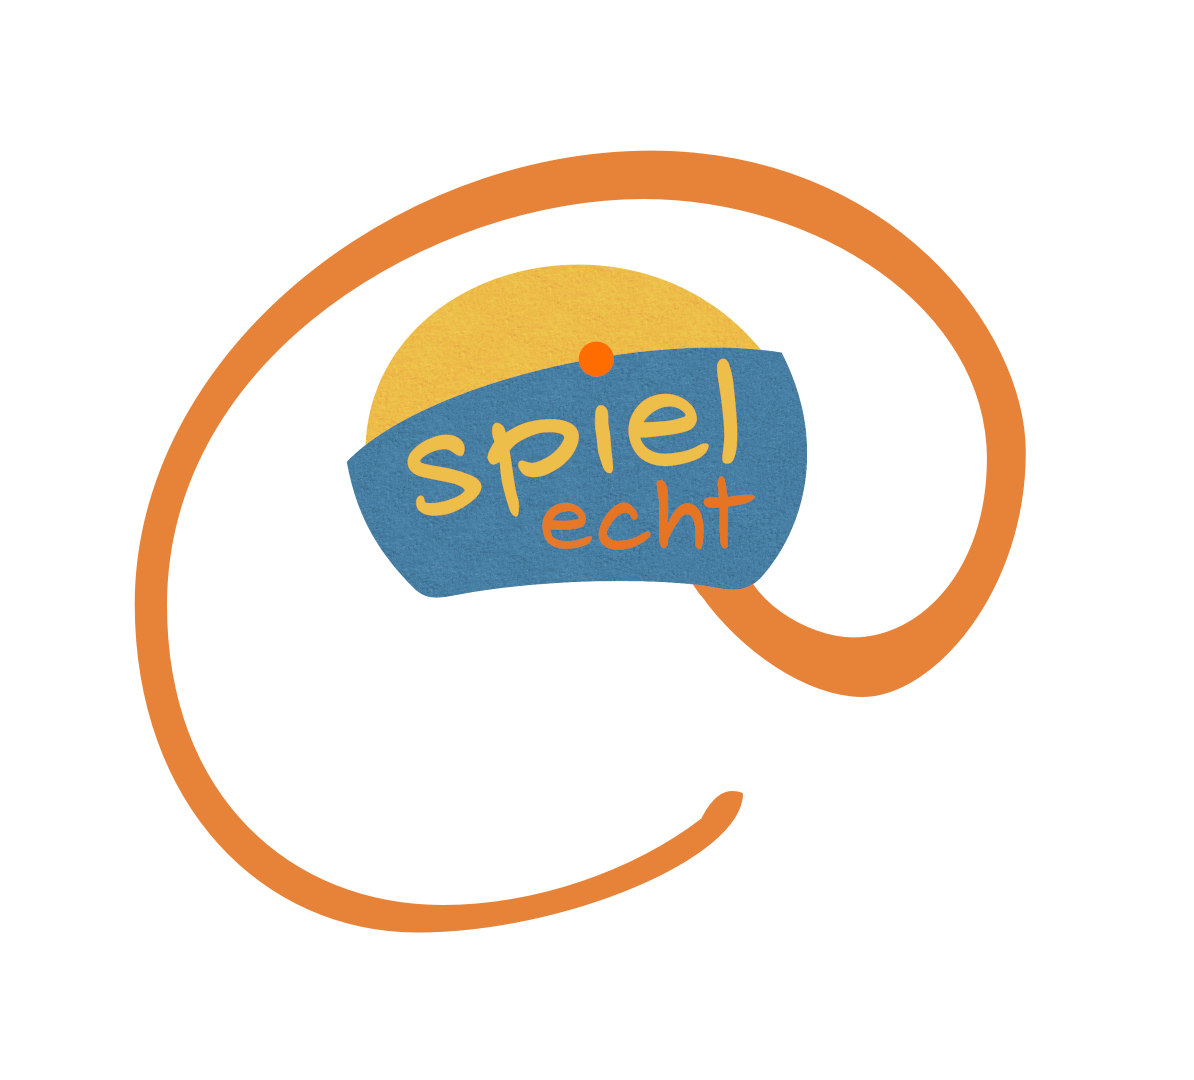 spielecht digital